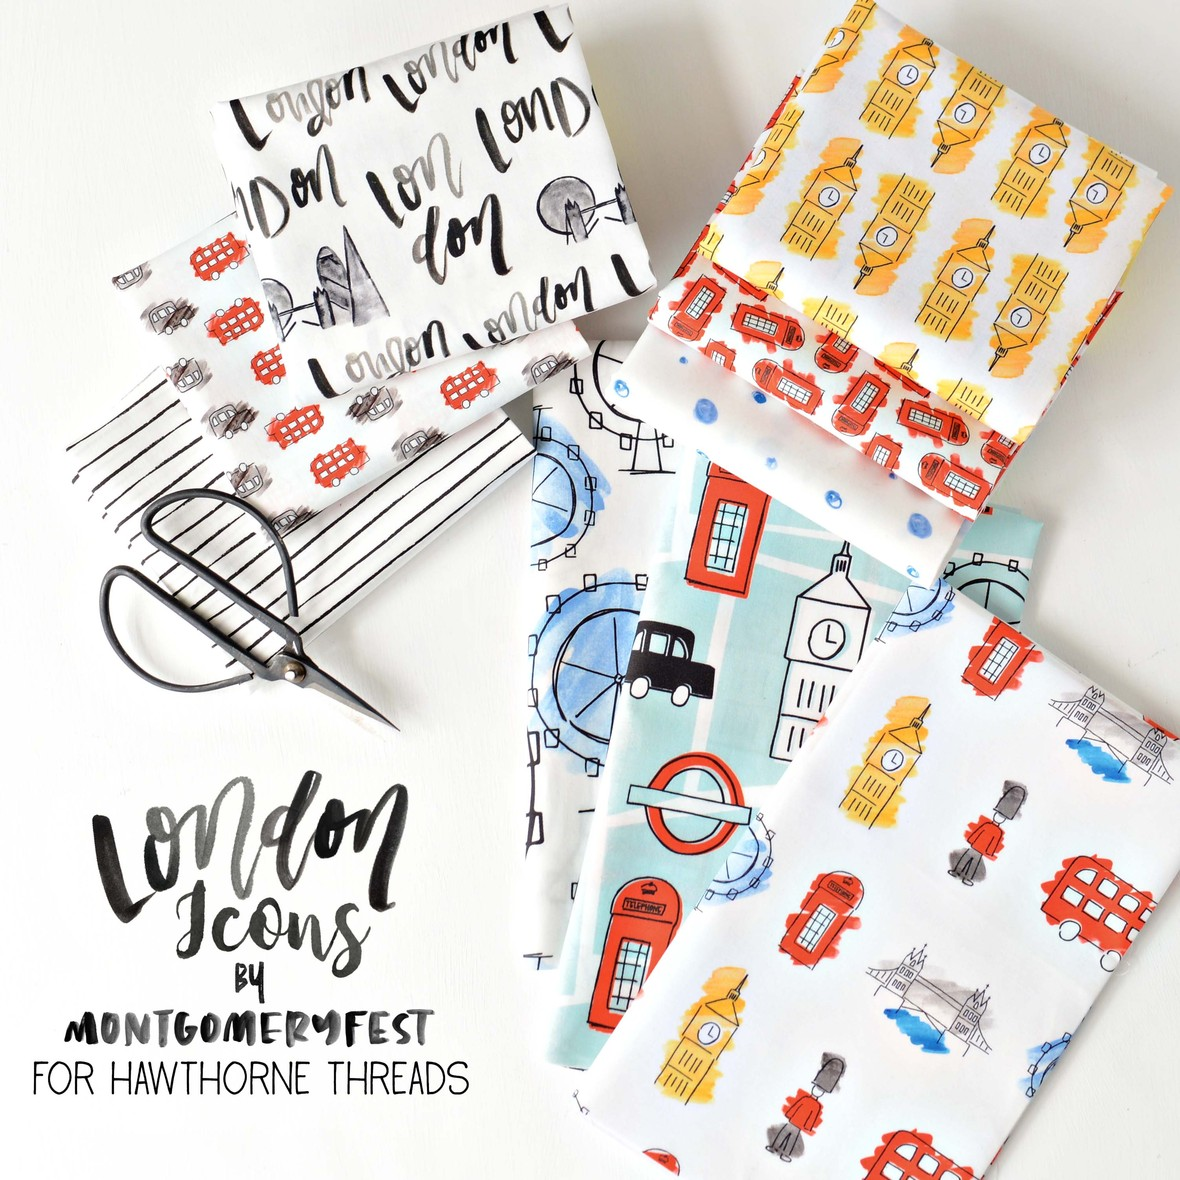 London Icons Fabric Poster MontgomeryFest for Hawthorne Threads b